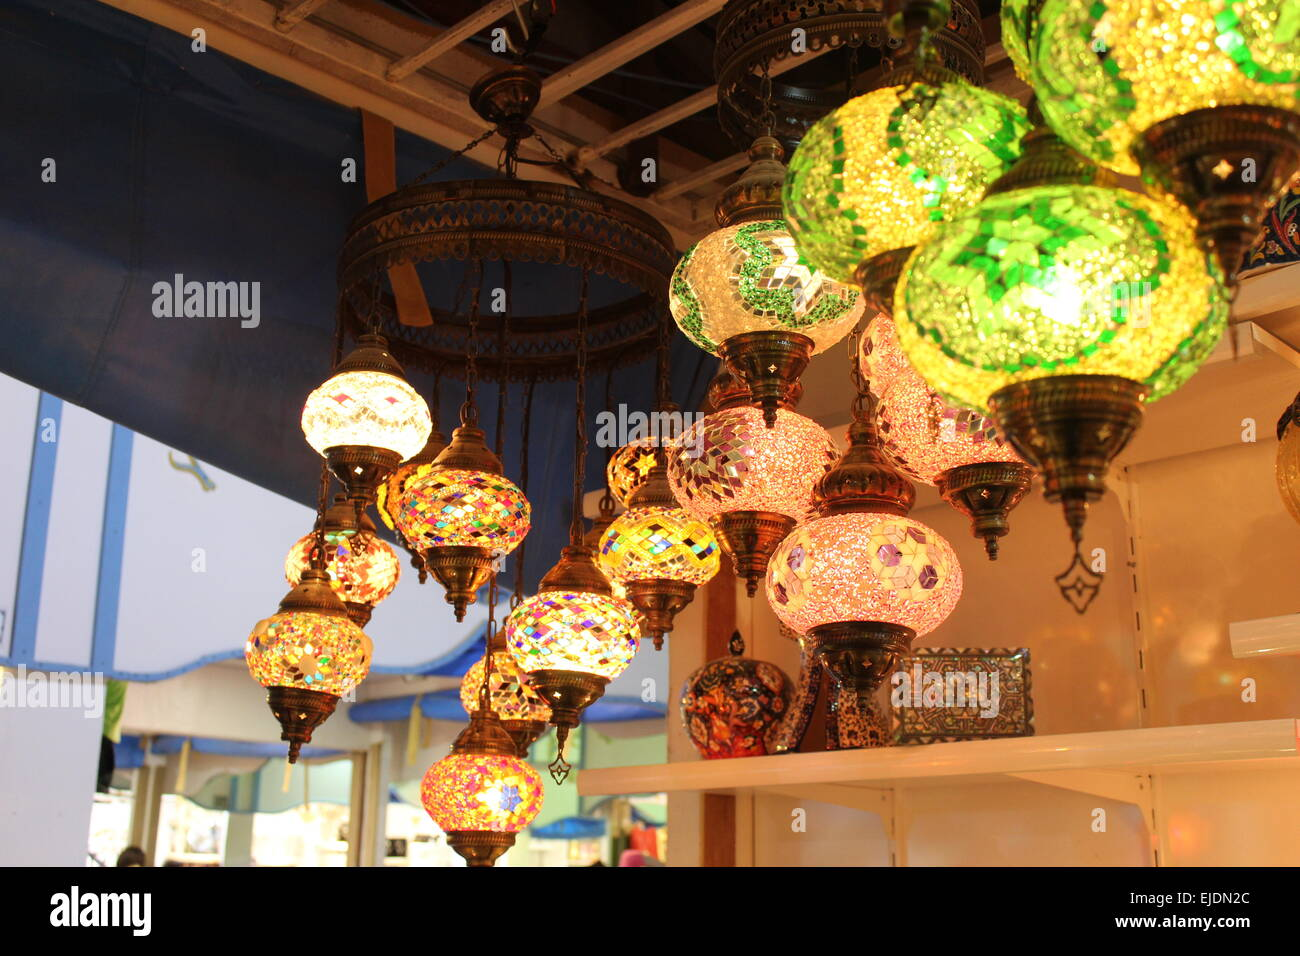 the beautiful handcrafted turkish lamps being displayed in the 'dubai global village ' - Stock Image